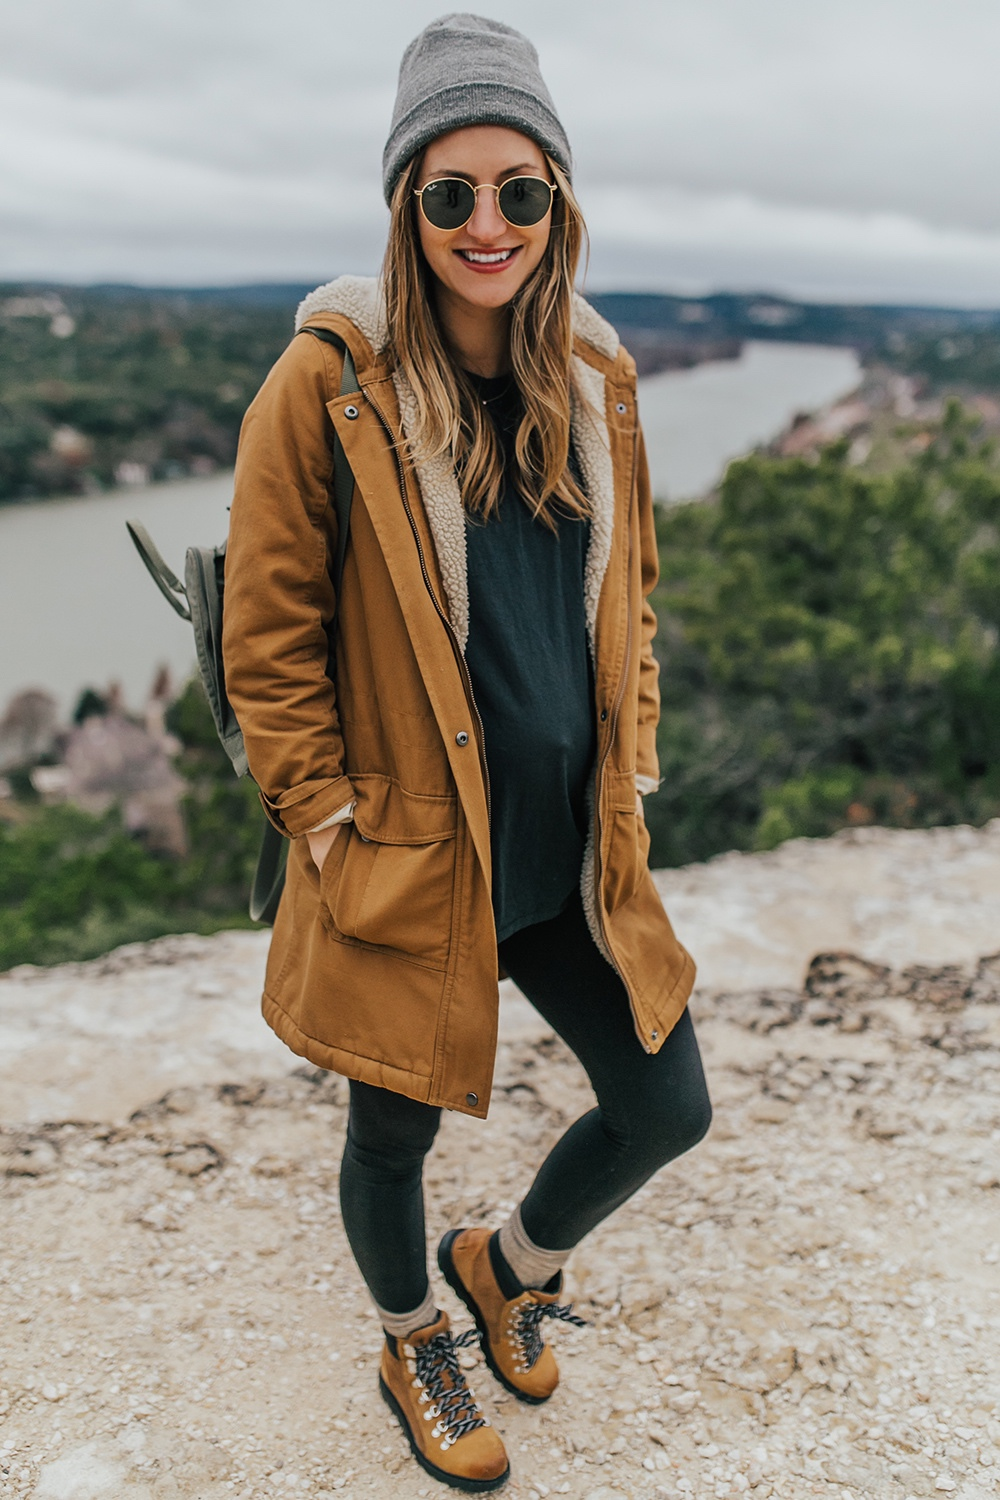 livvyland-blog-olivia-watson-austin-texas-fashion-lifestyle-blogger-patagonia-prarie-dawn-jacket-winter-hike-mount-bonnell-6